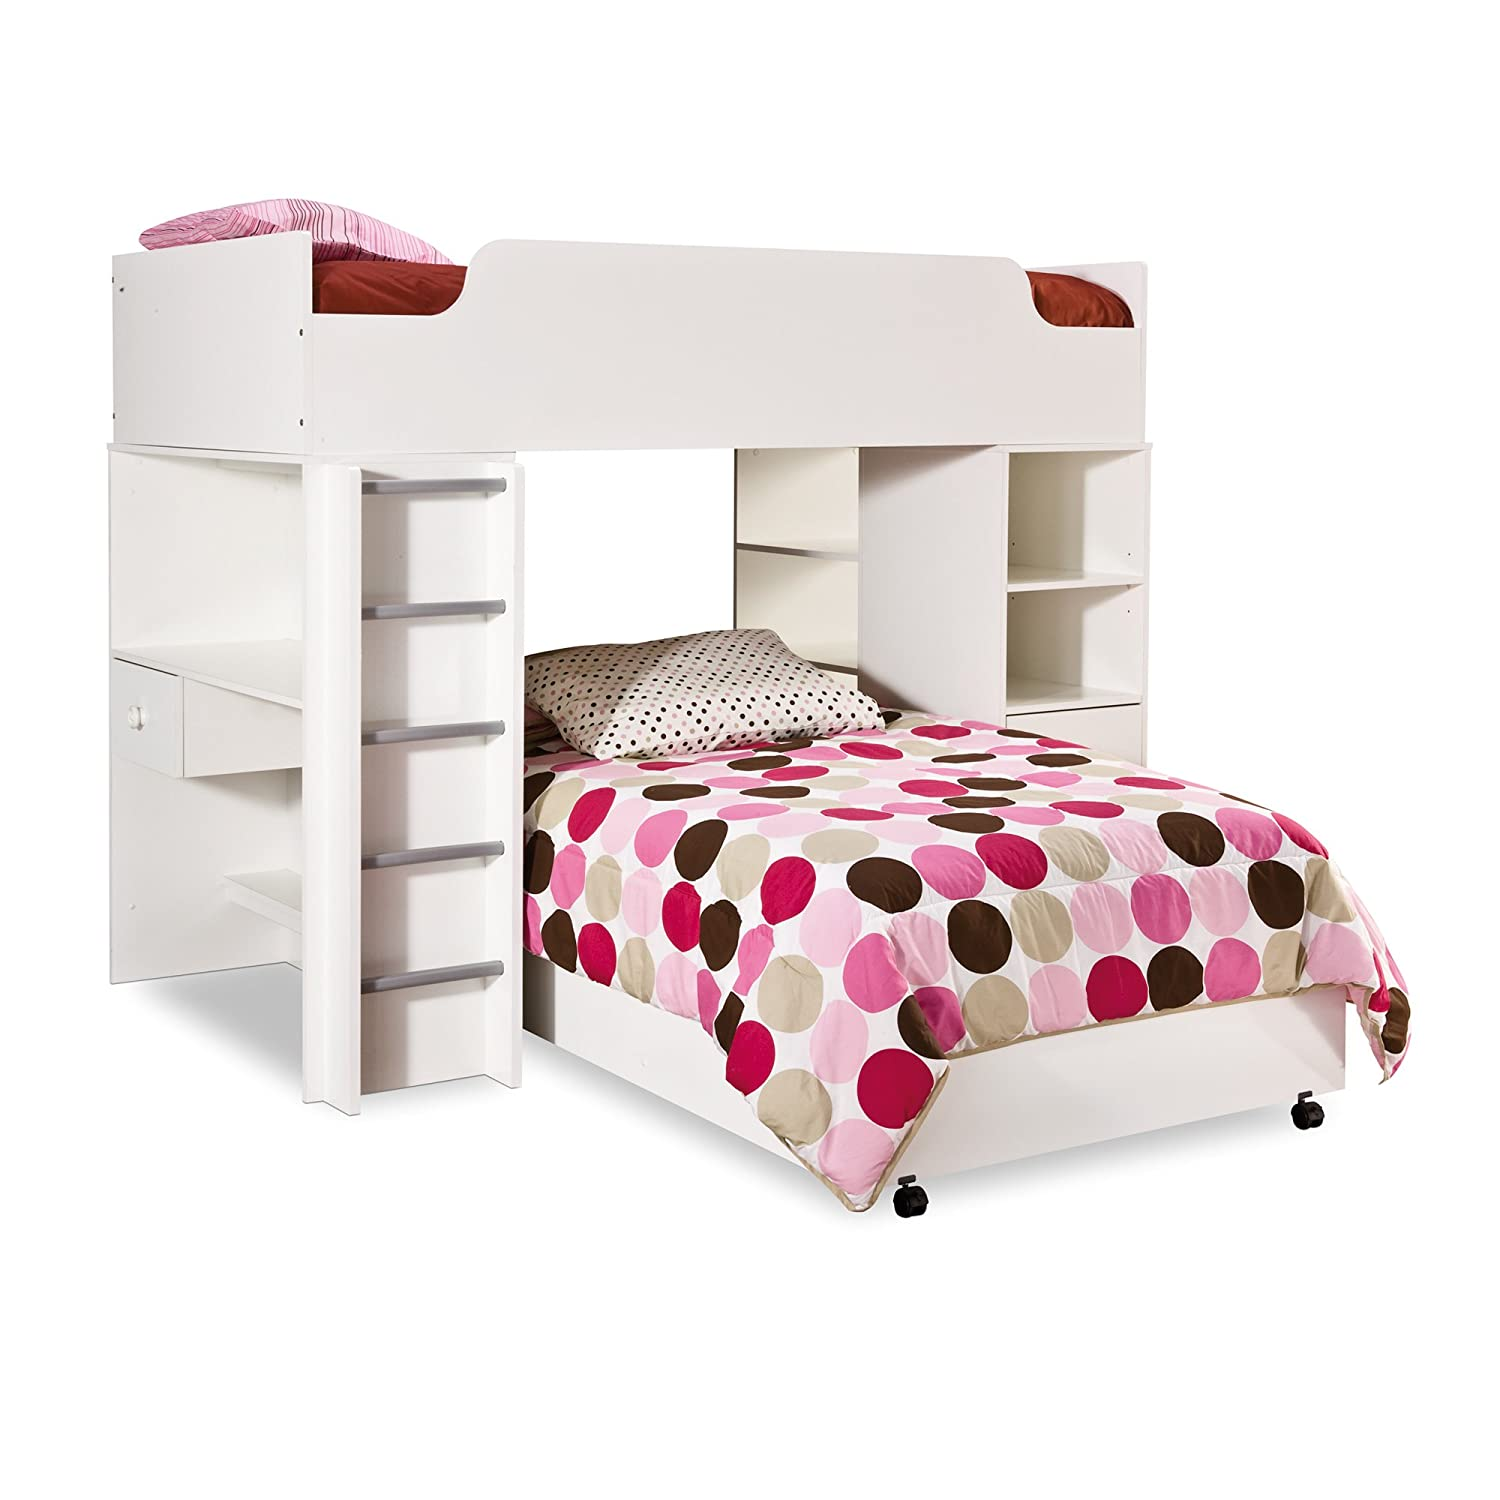 kid loft bed x shaped twin loft bed best  loft bunk beds ideas  - amazoncom south shore complete loft bed logiksand castle collection purewhite kitchen u dining